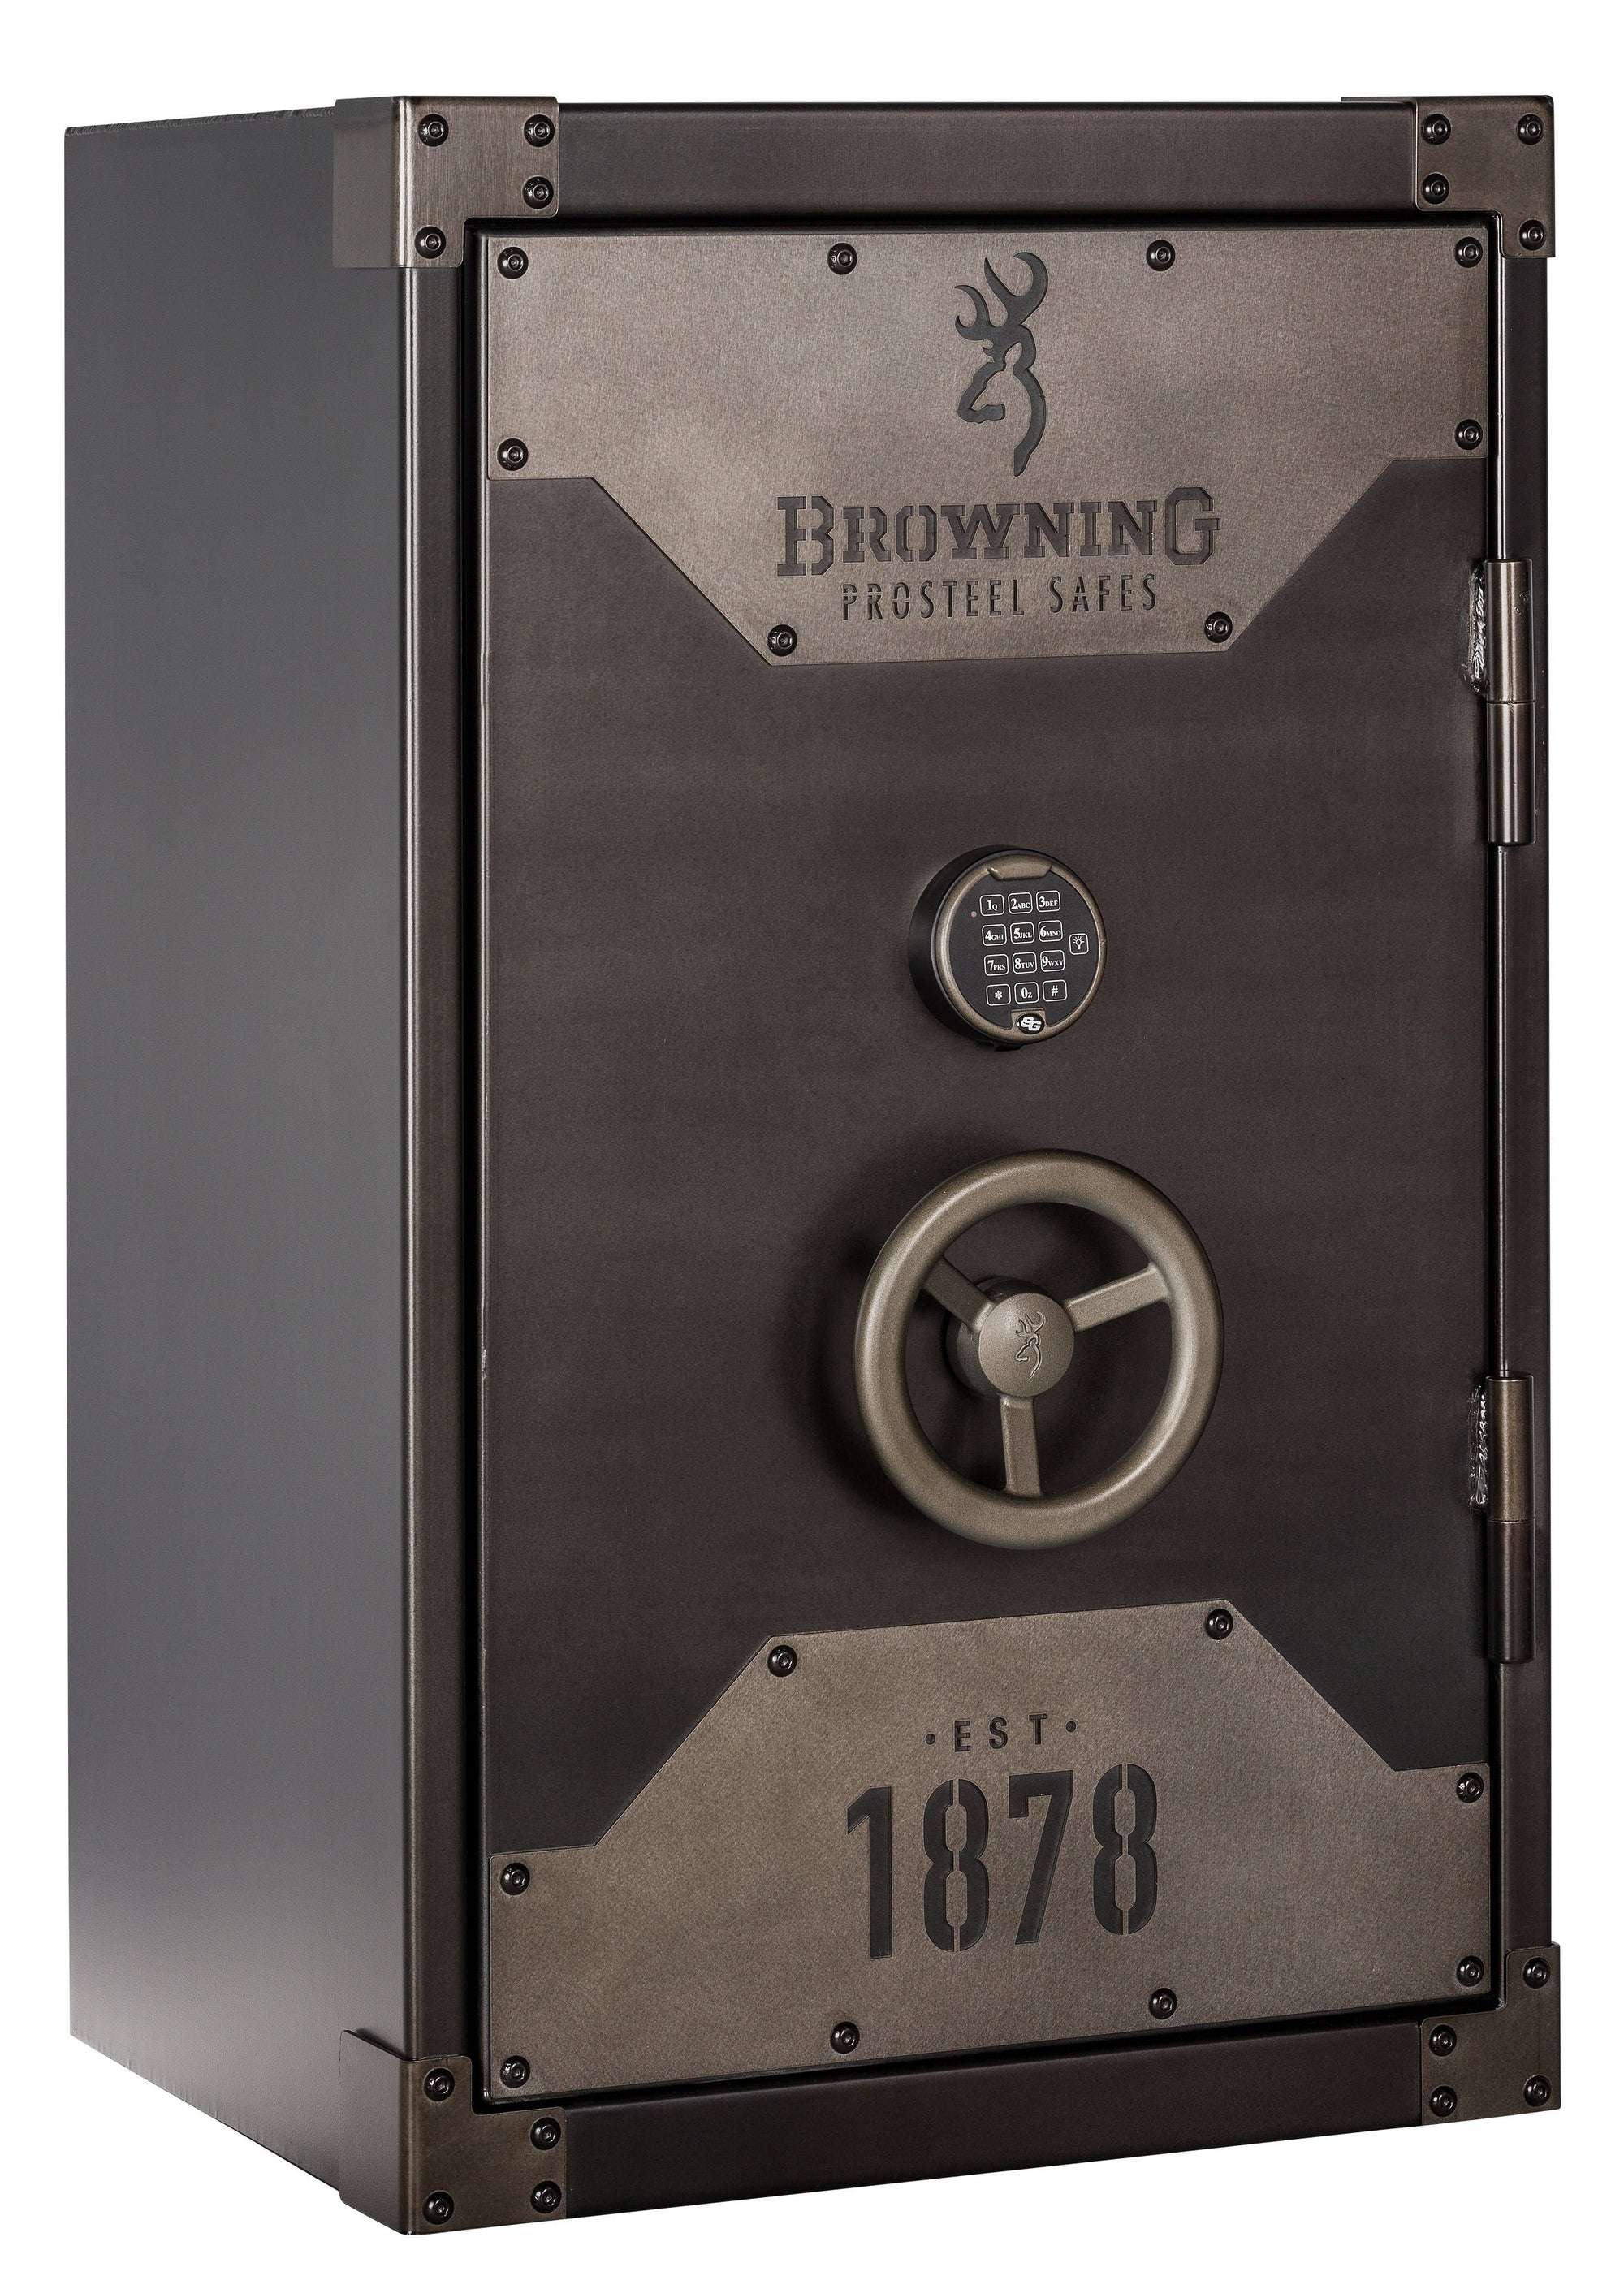 Burglar Fire Safe Products - Browning 1878-13 Closet Burglar & 90 Minute Fire Safe - 2021 Model